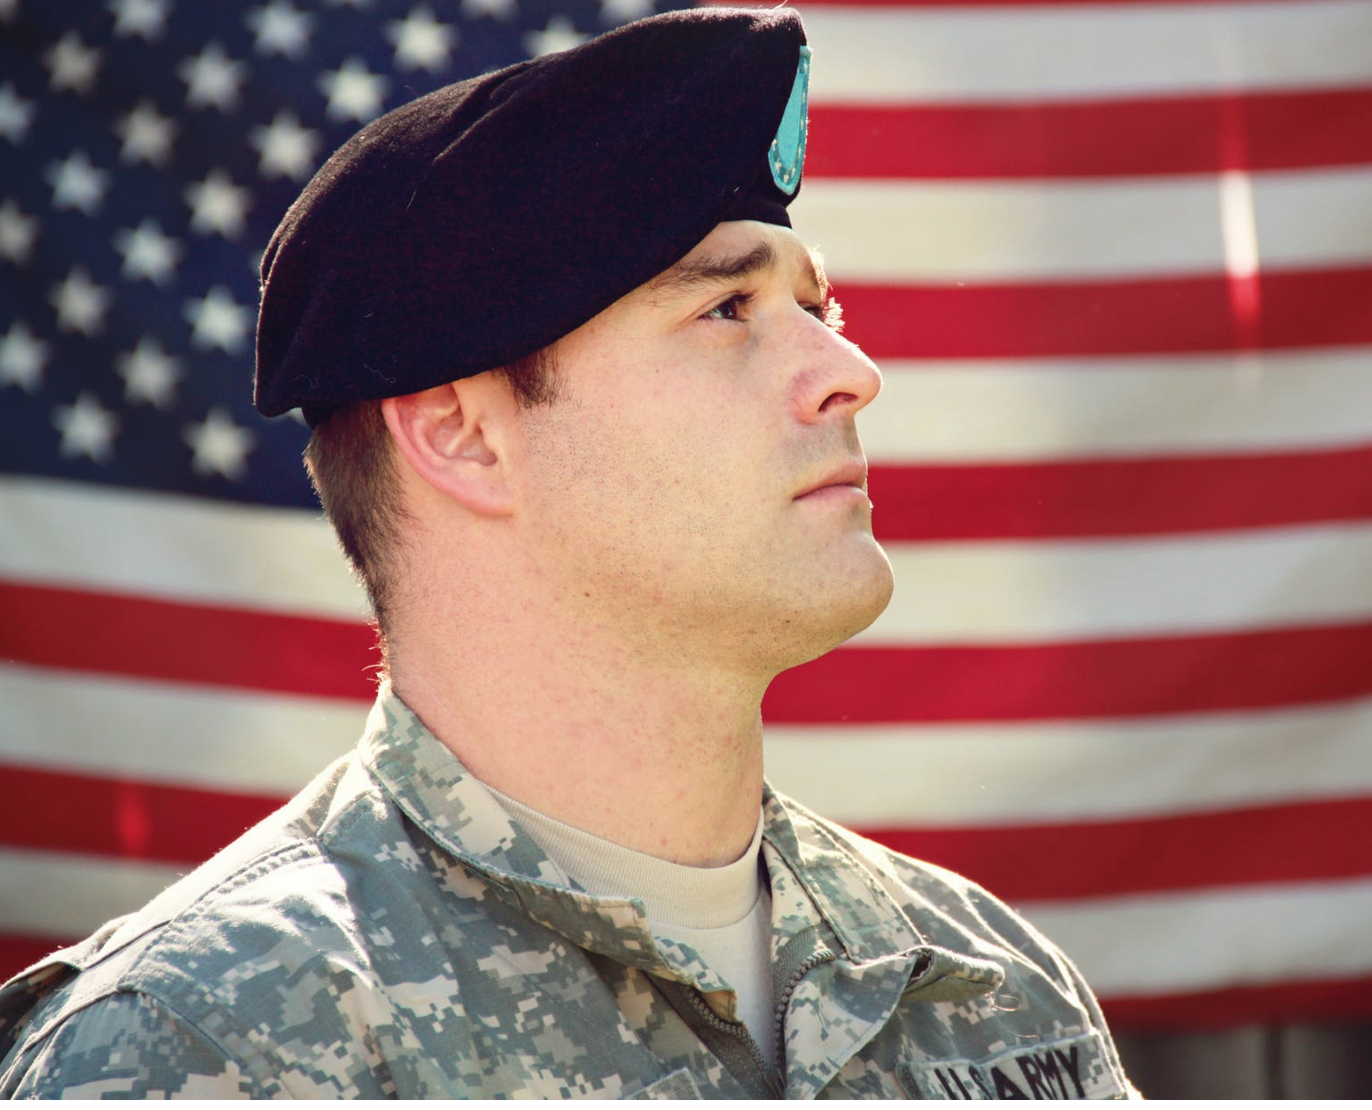 Deciding Between a VA Loan and FHA Loan? Read This First.